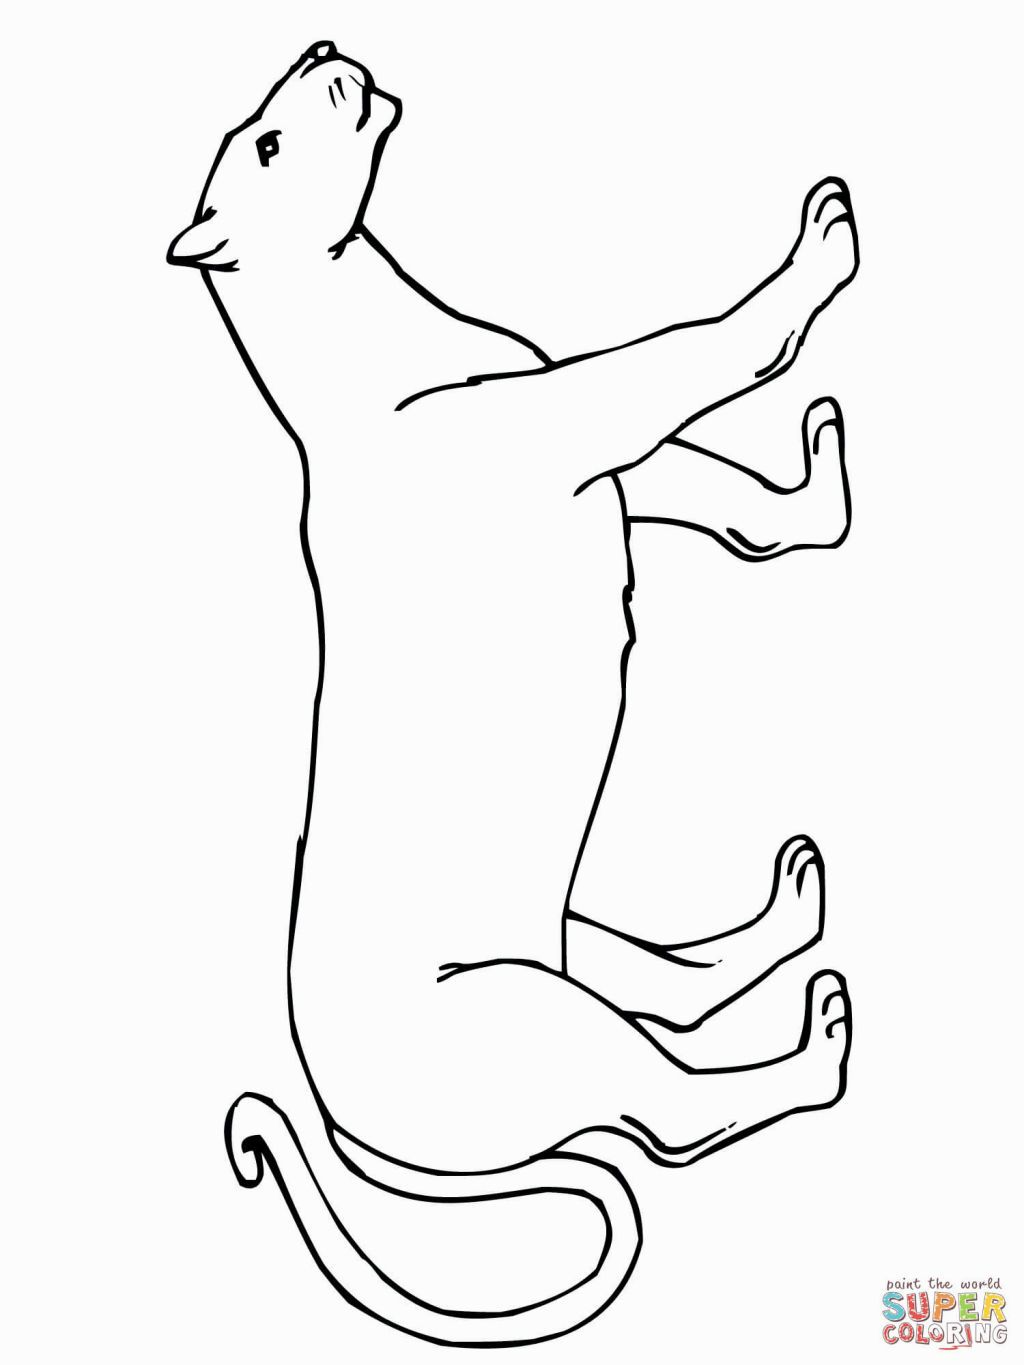 mountain lion coloring pages mountain lion coloring page youngandtaecom in 2020 pages lion coloring mountain